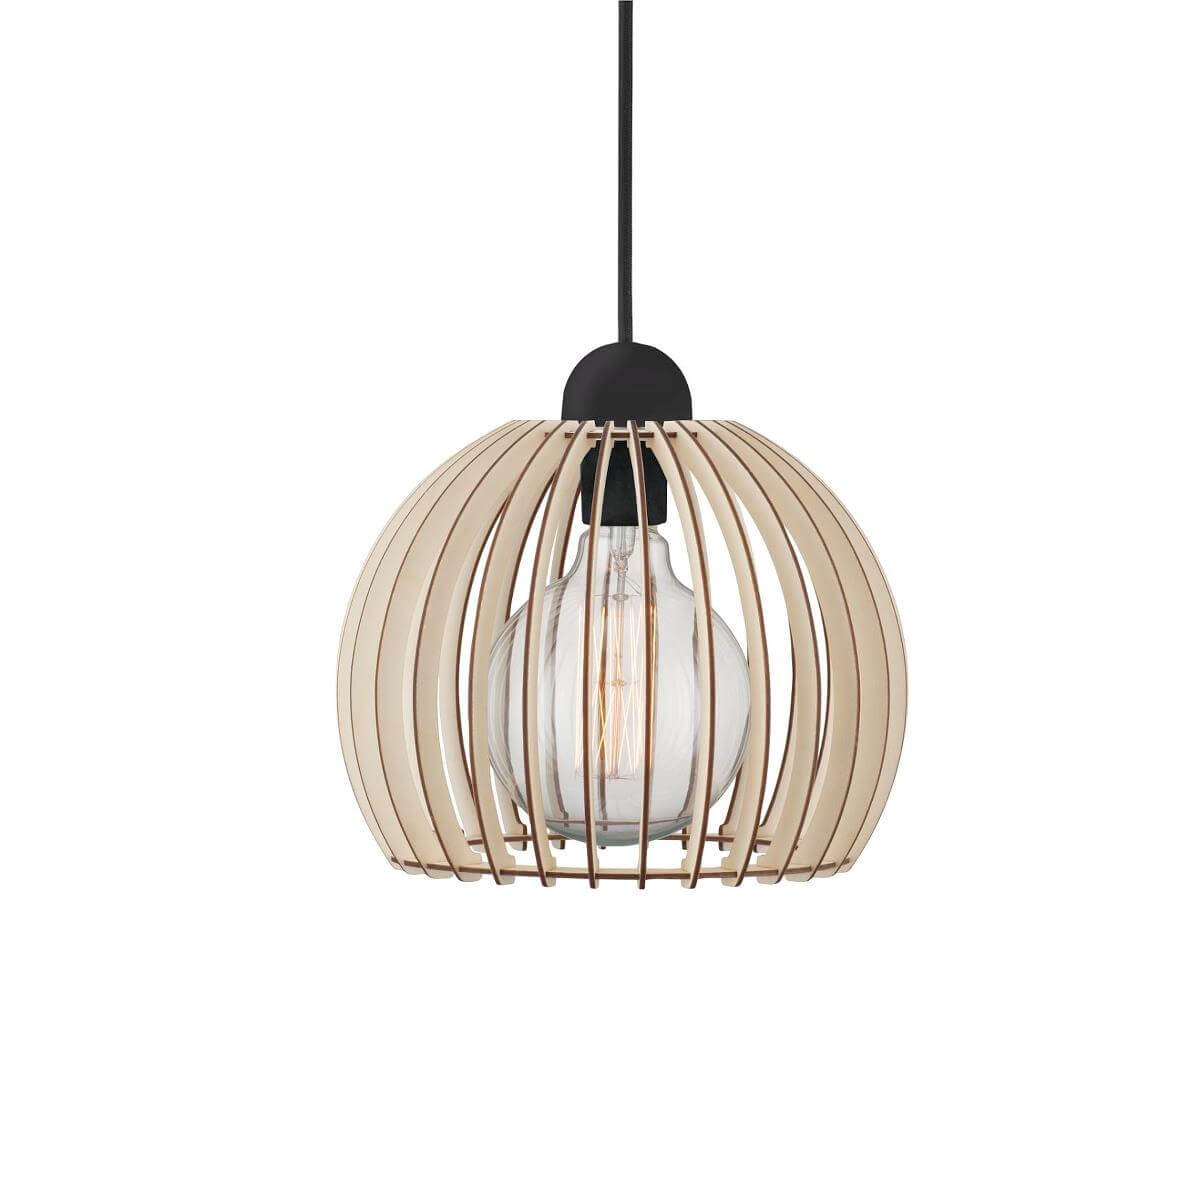 Suspension en bois ajourée Chino Small - Nordlux